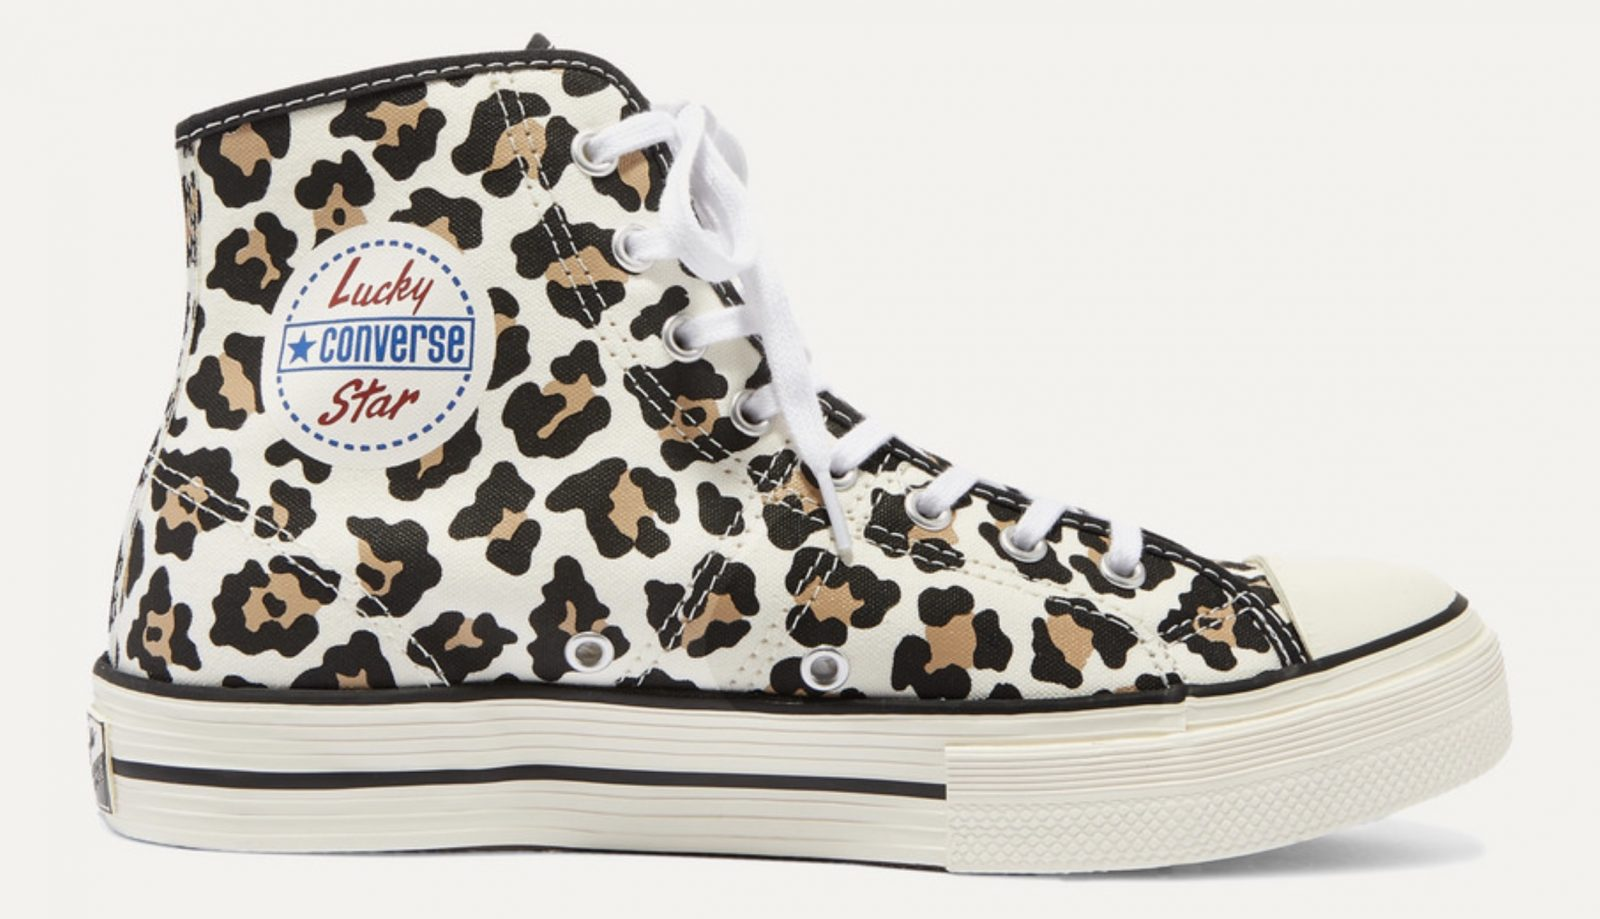 Converse Lucky Star leopard-print high-top canvas sneakers